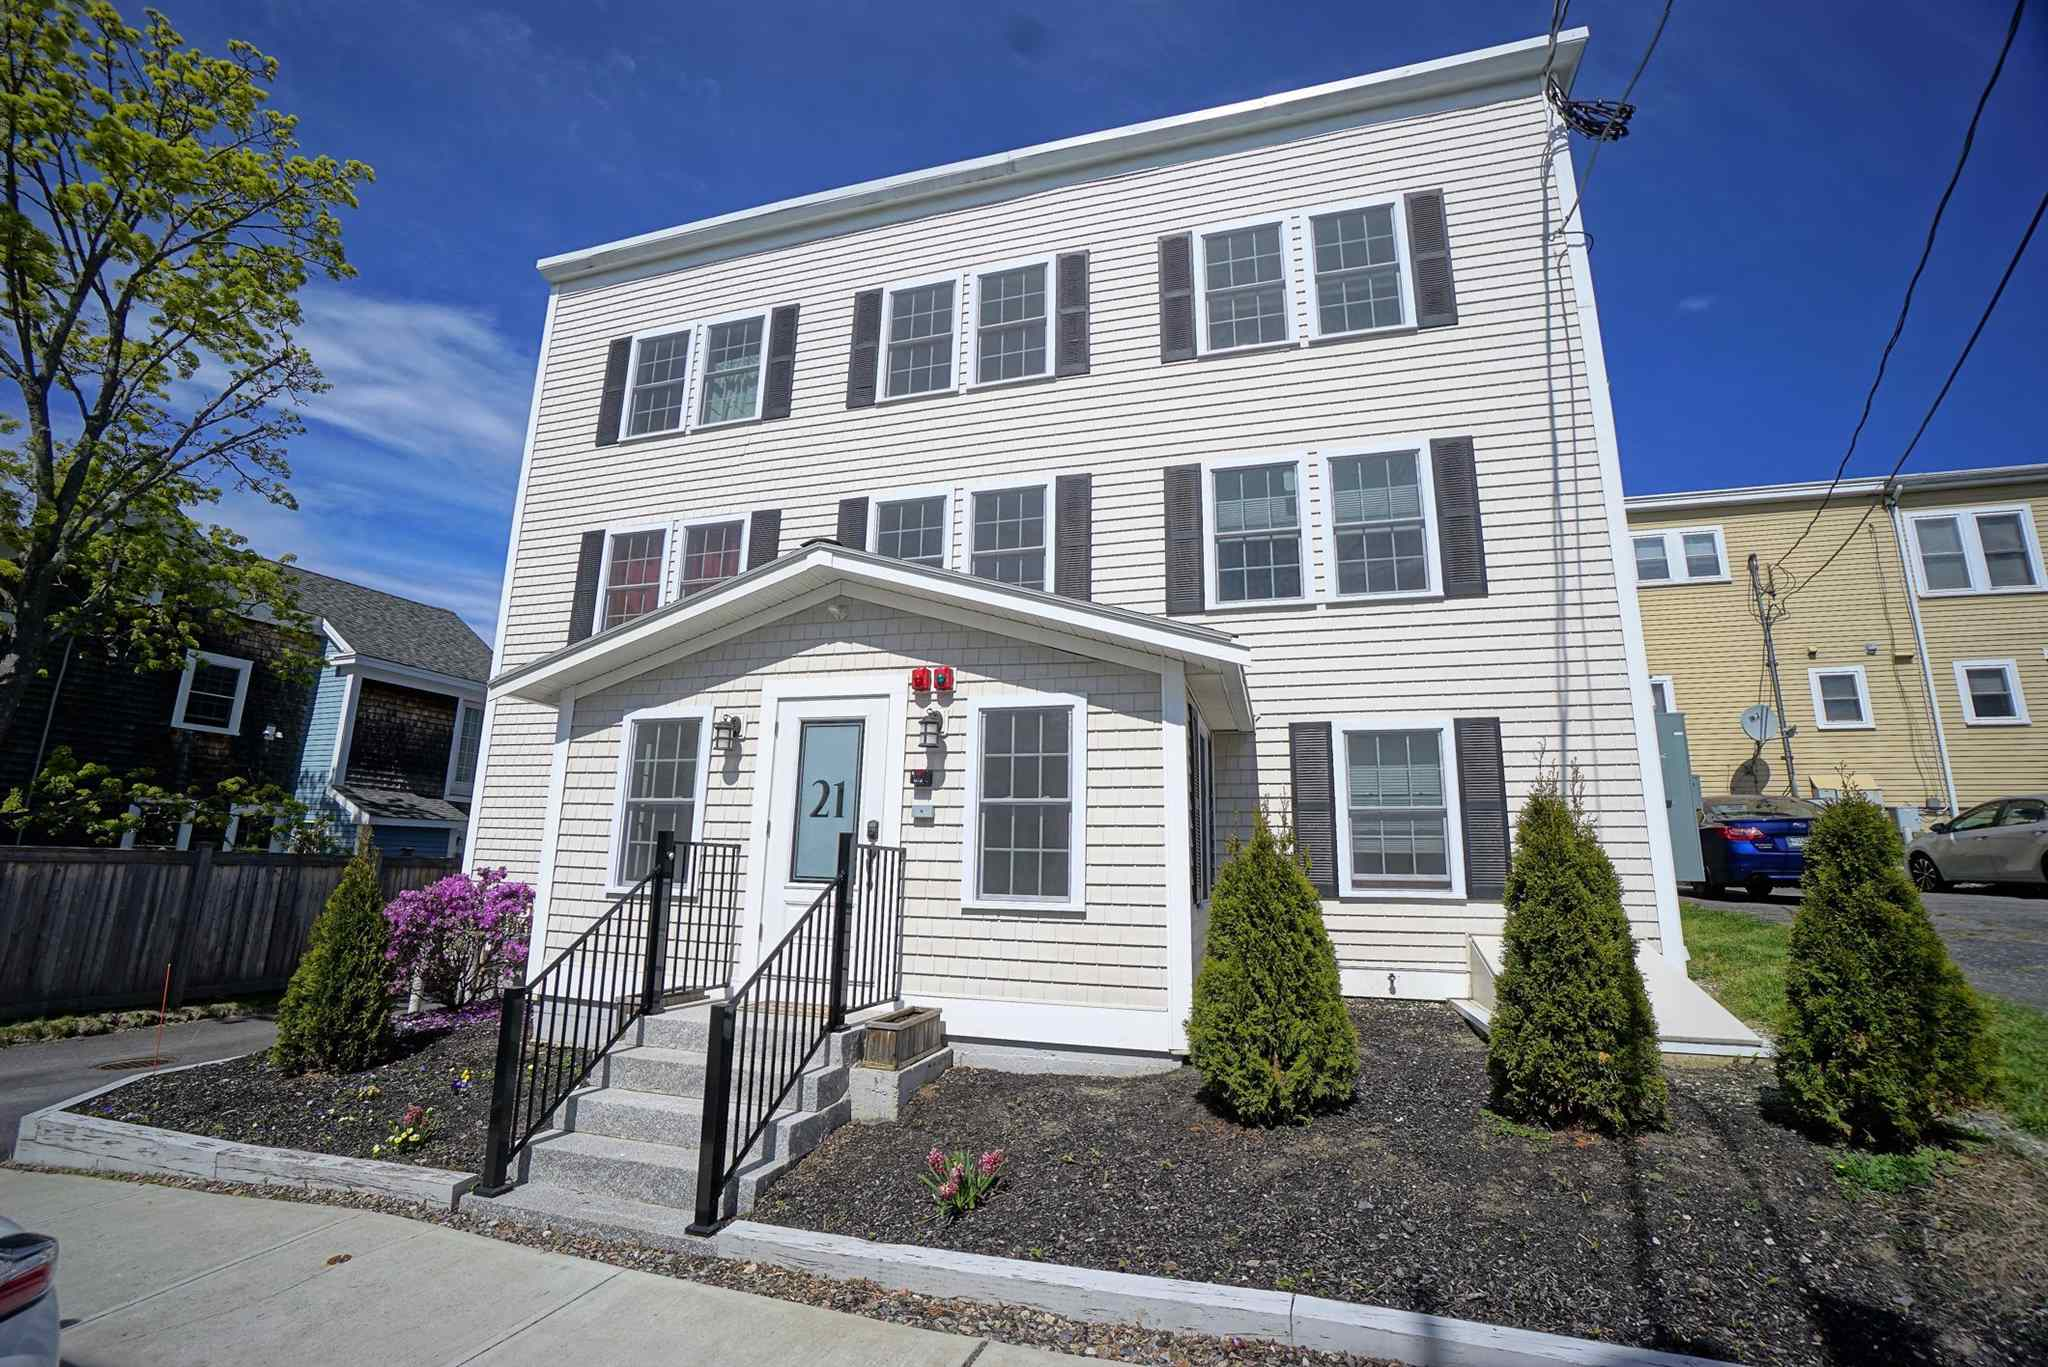 Photo of 21 Brewster Street Portsmouth NH 03801